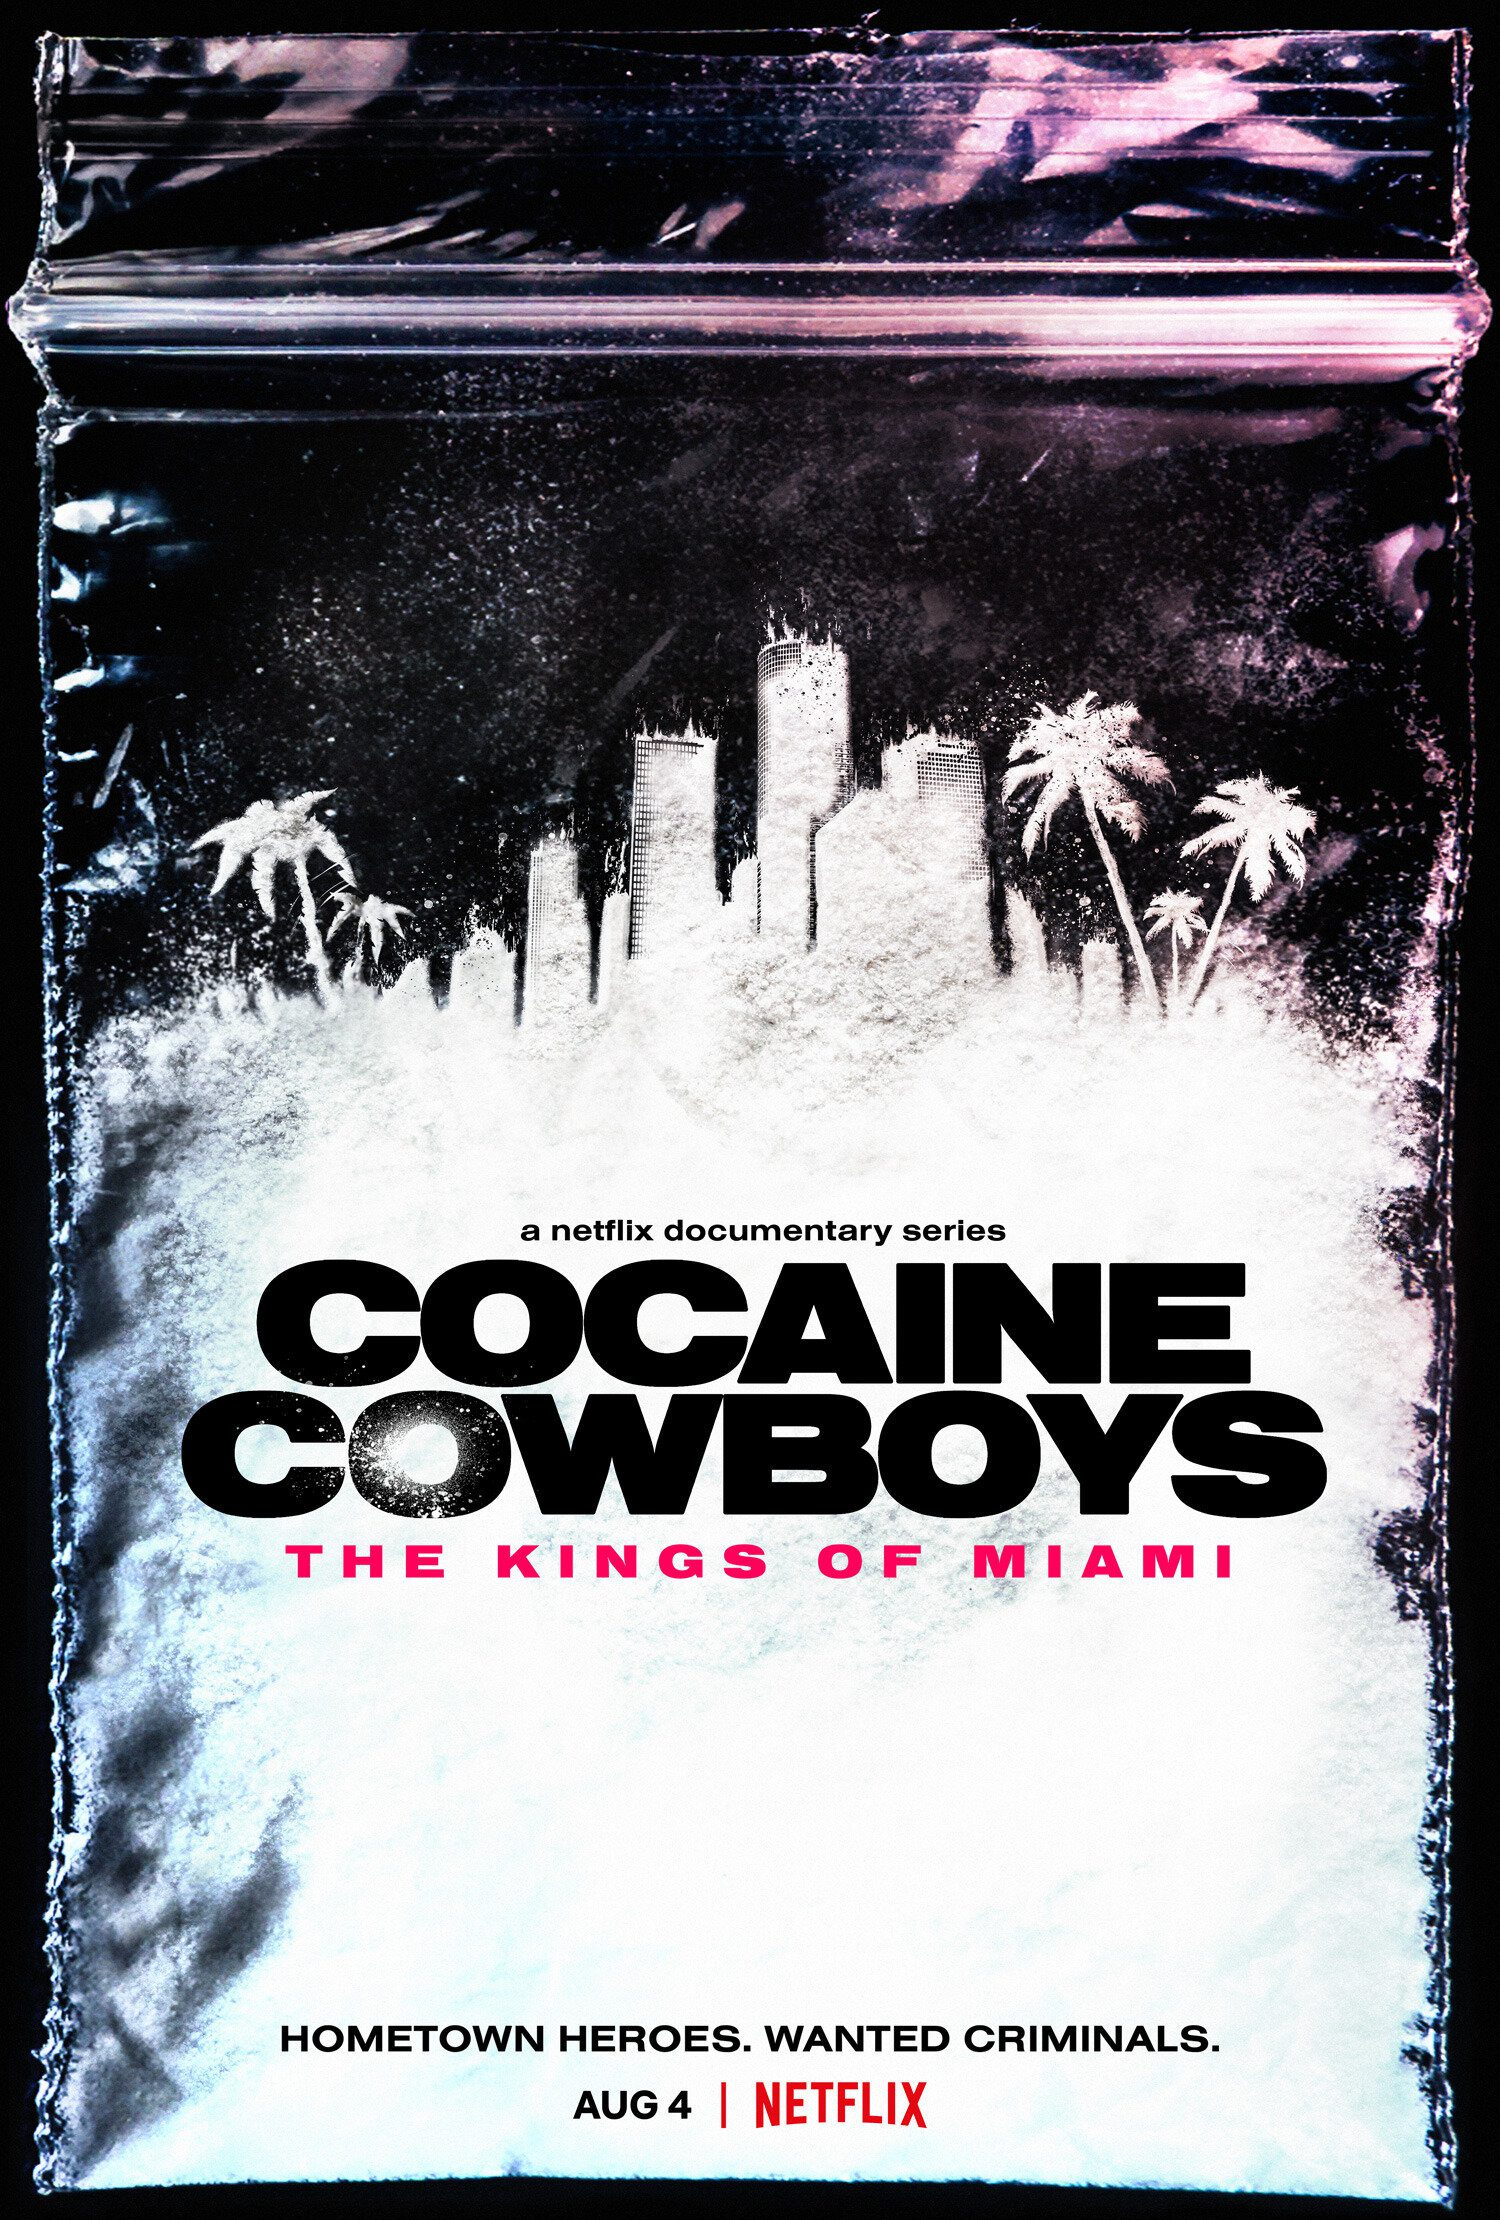 Cocaine Cowboys: The Kings of Miami teaser image